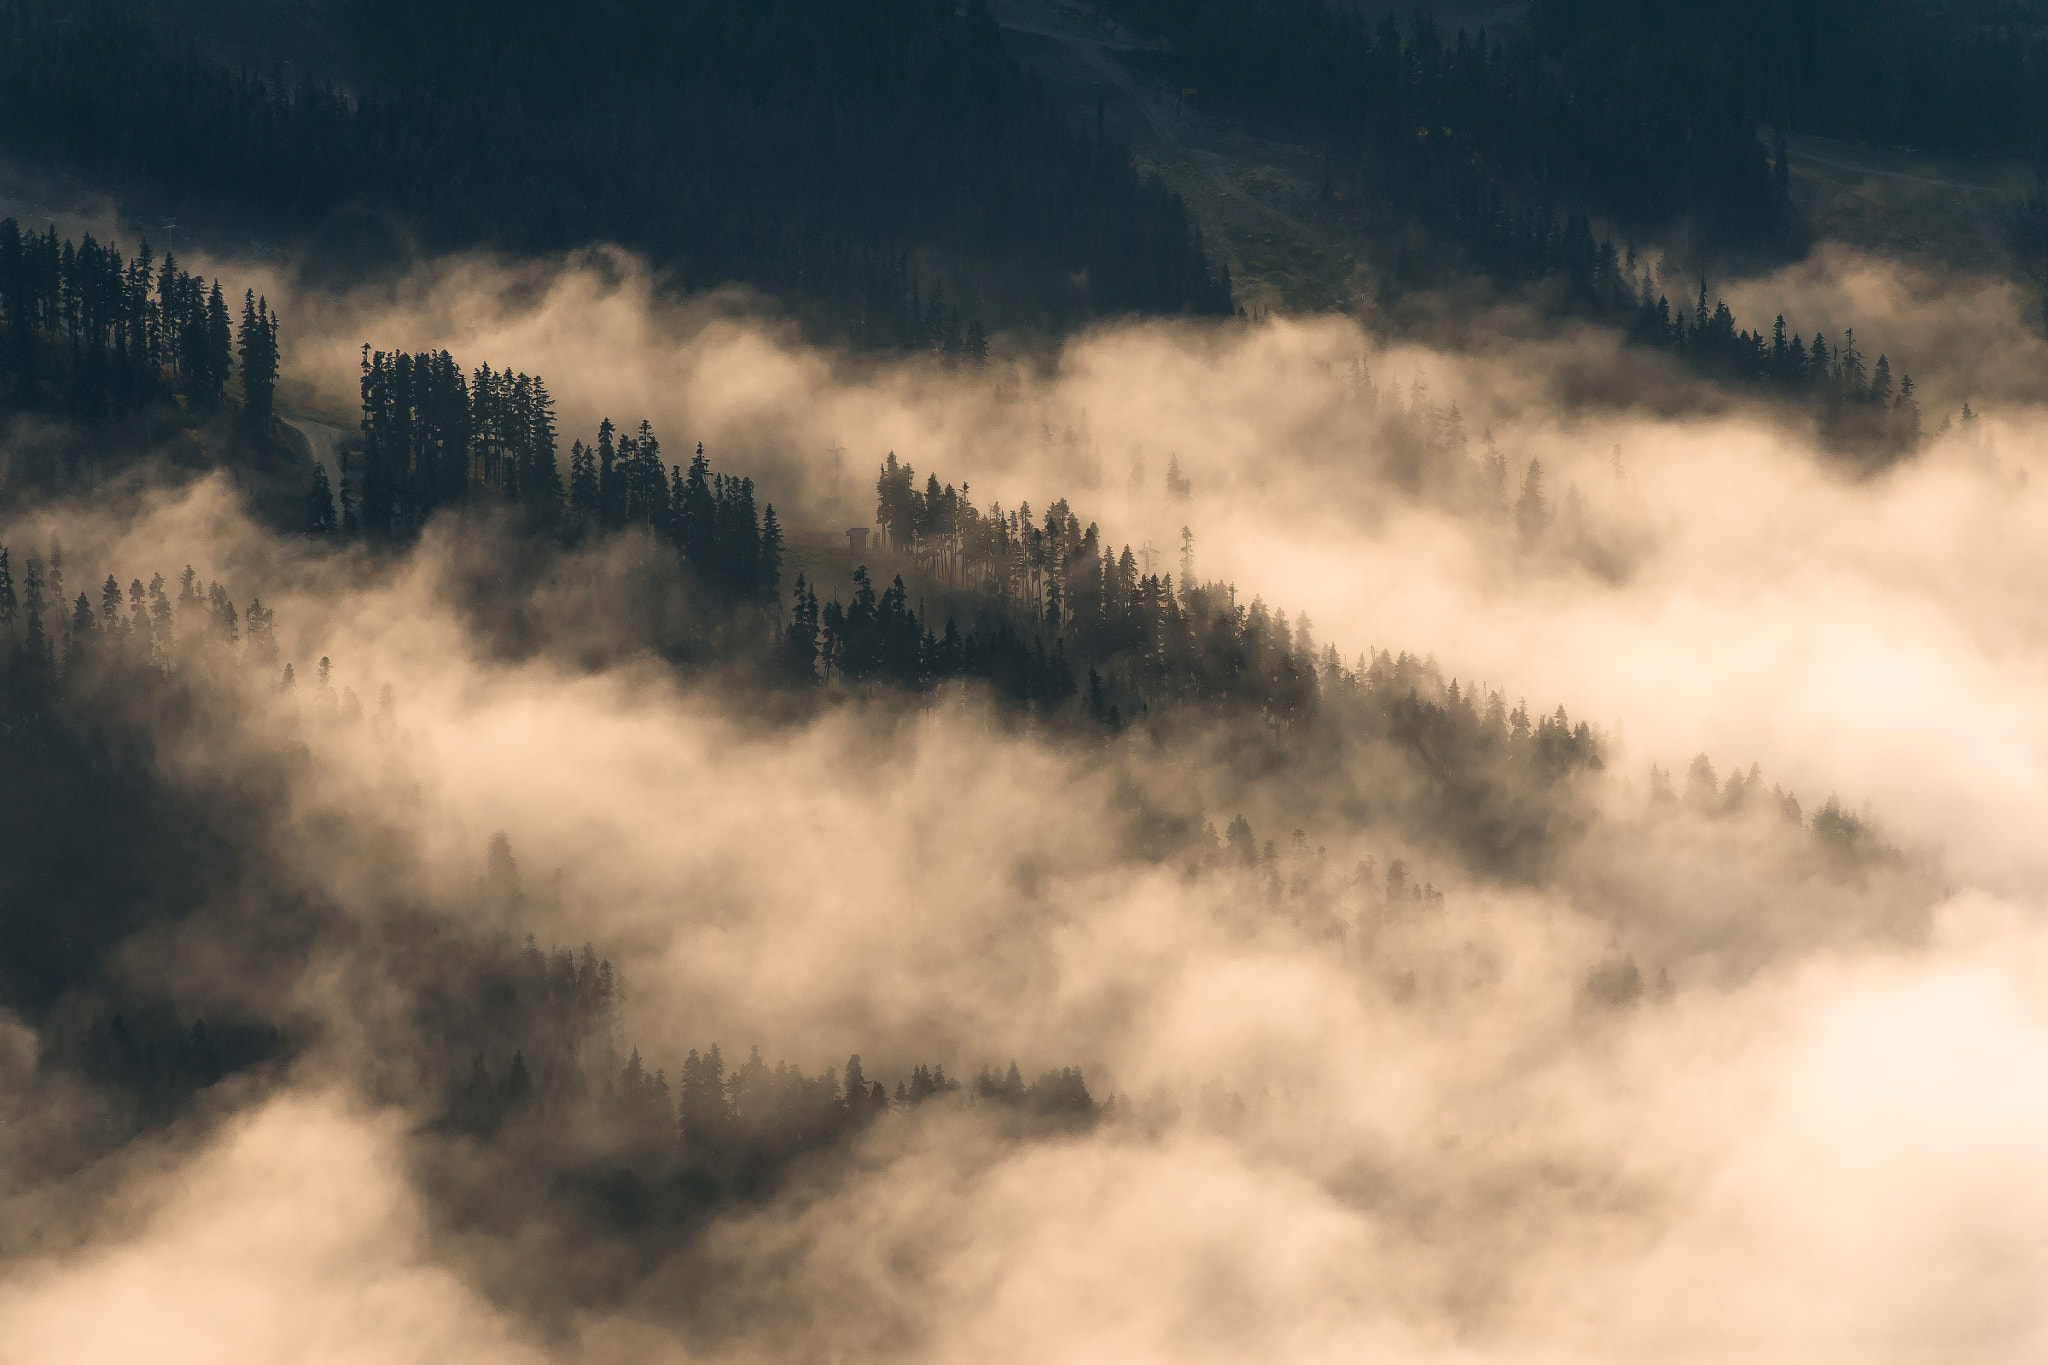 Photograph I thought of you when the mist cuddled the trees by Evgeny Tchebotarev on 500px